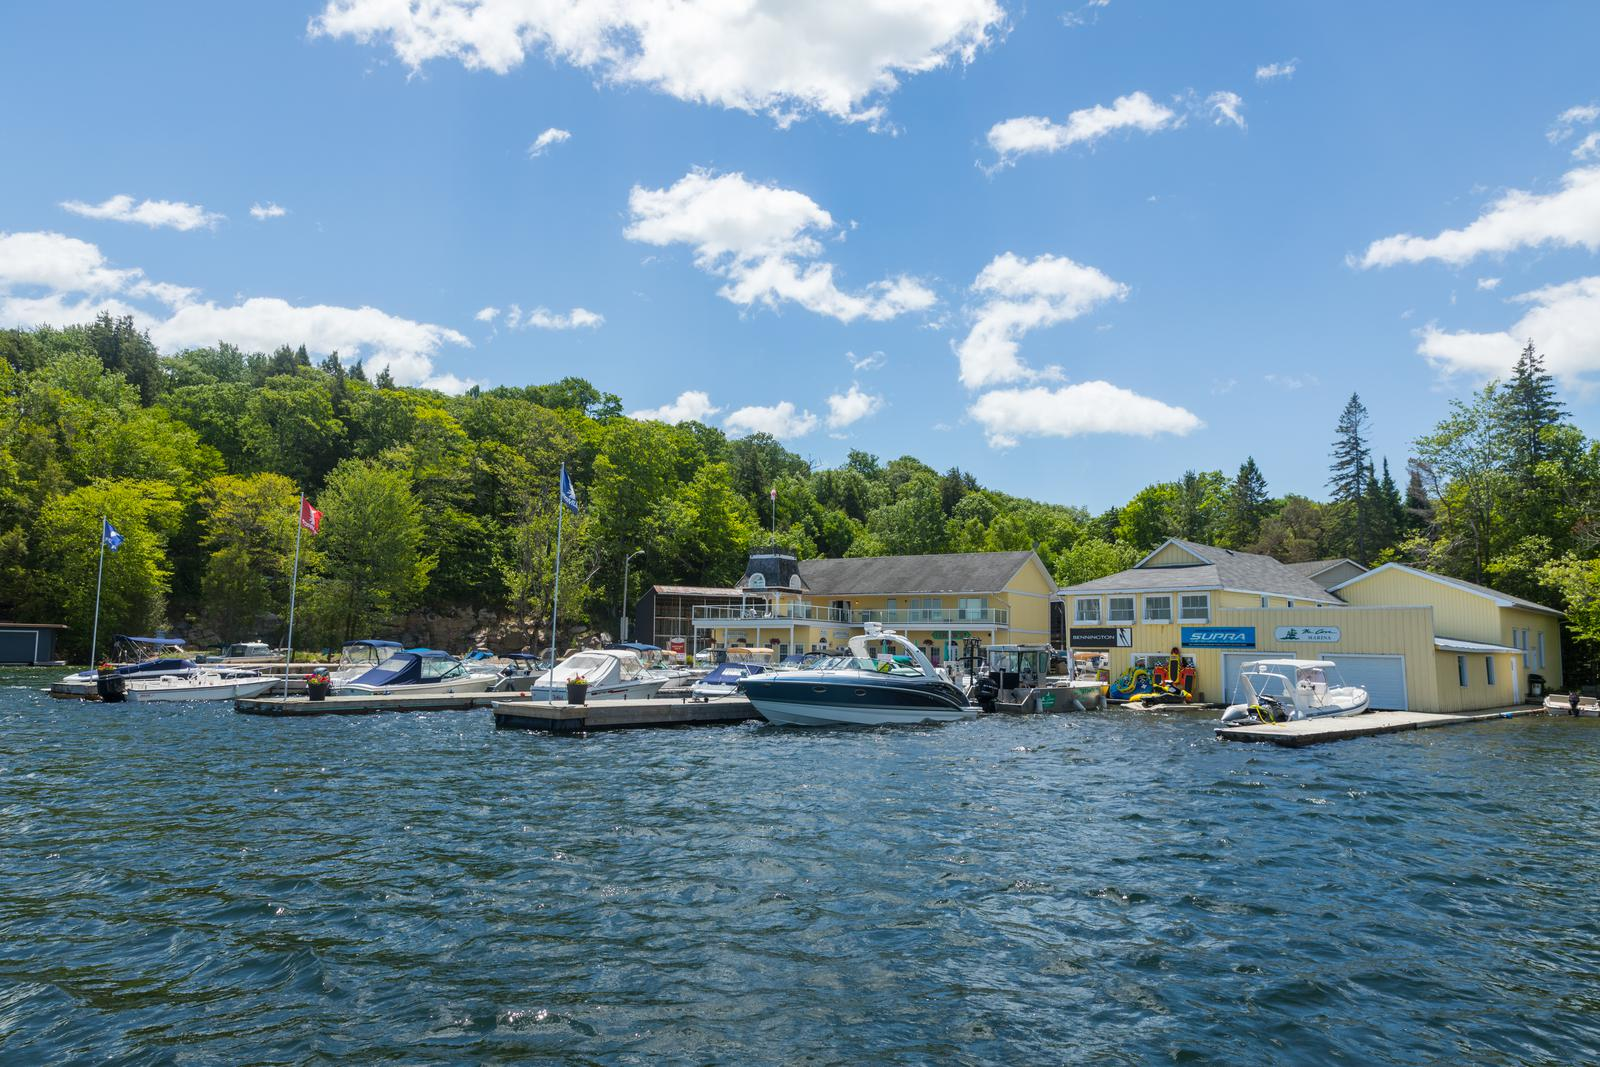 The Cove Marina at Foots Bay Lake Joseph Muskoka